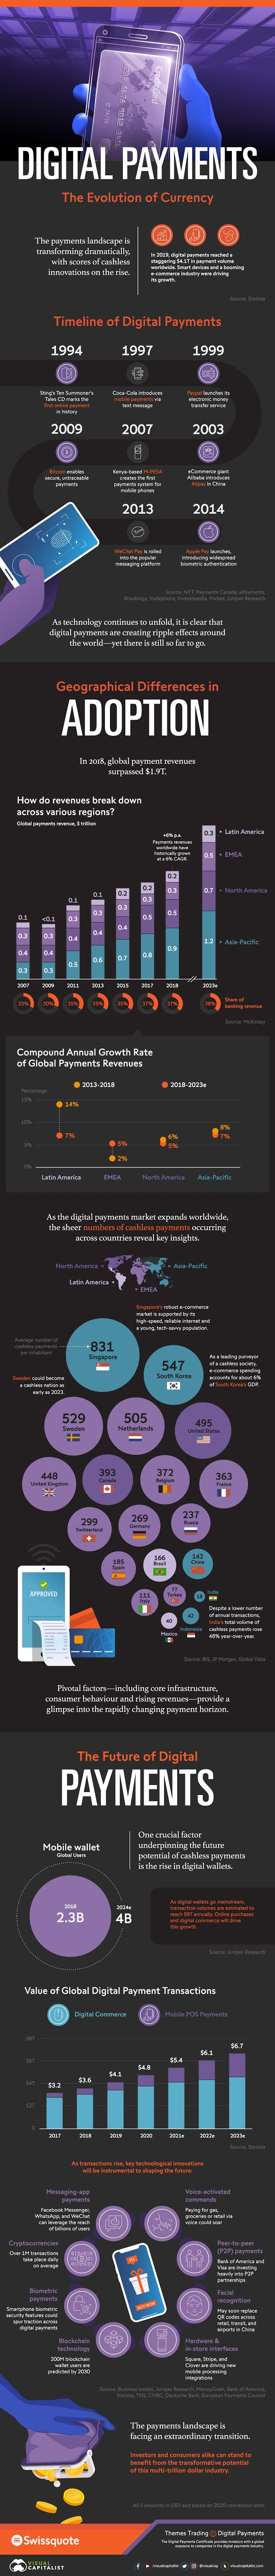 Digital Payments: The Evolution of Currency #infographic